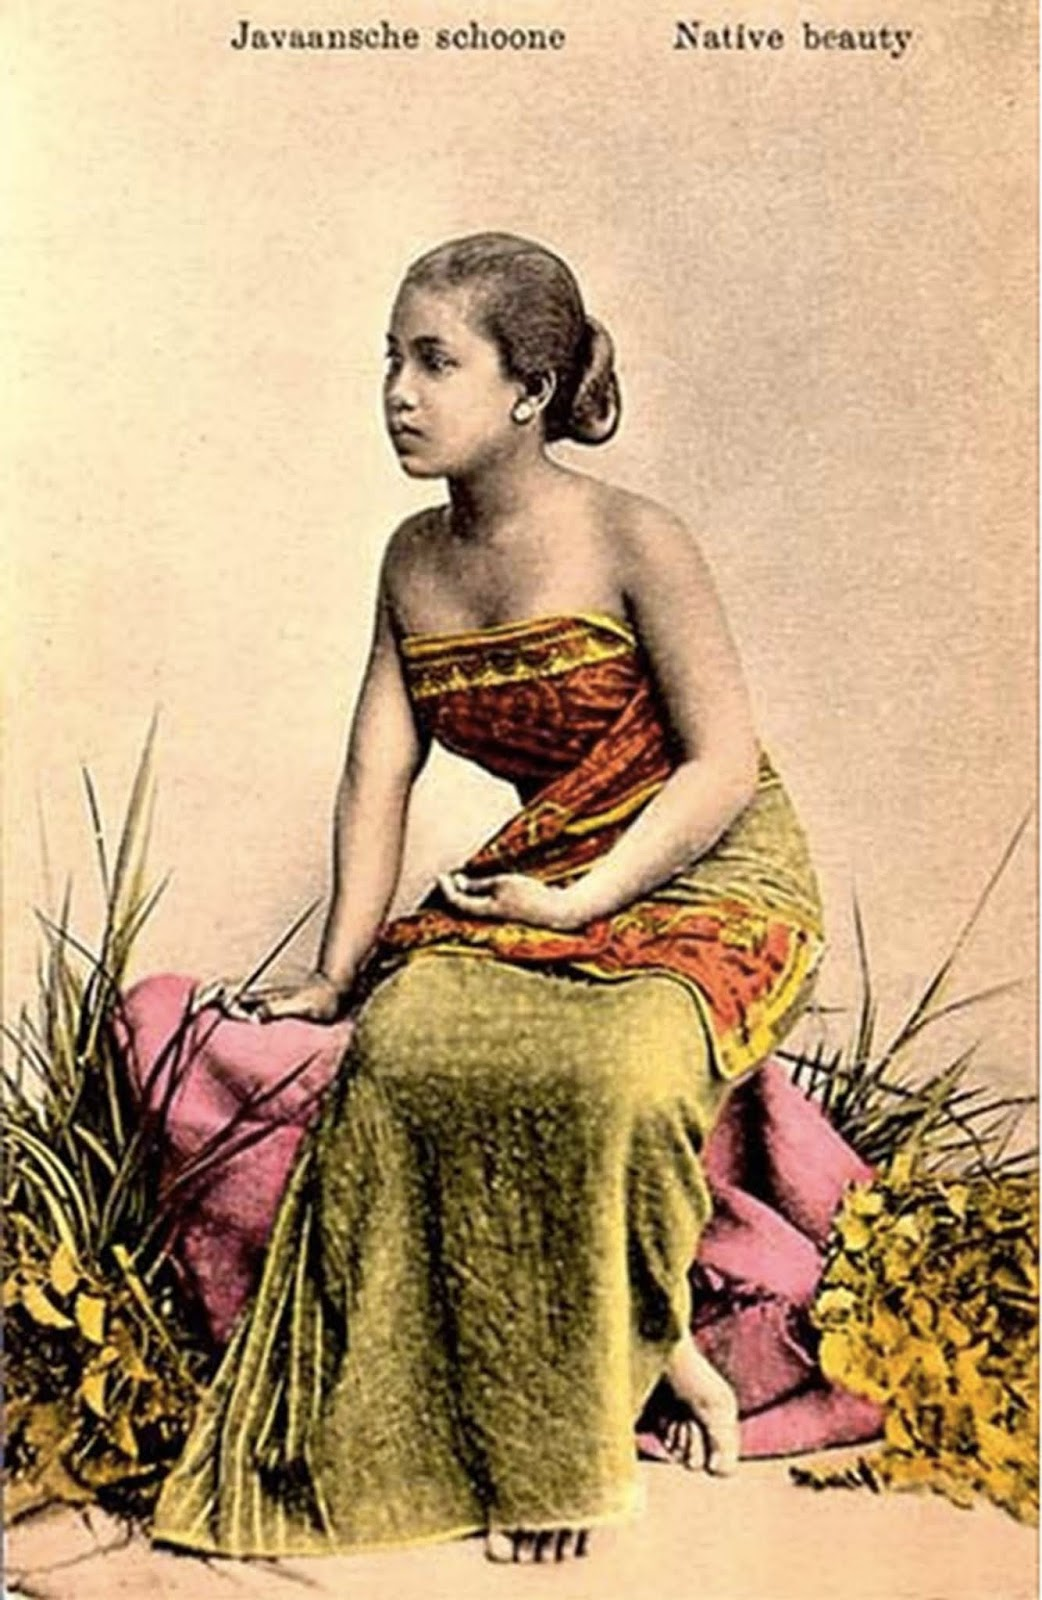 Dutch postcard of a Javanese beauty.